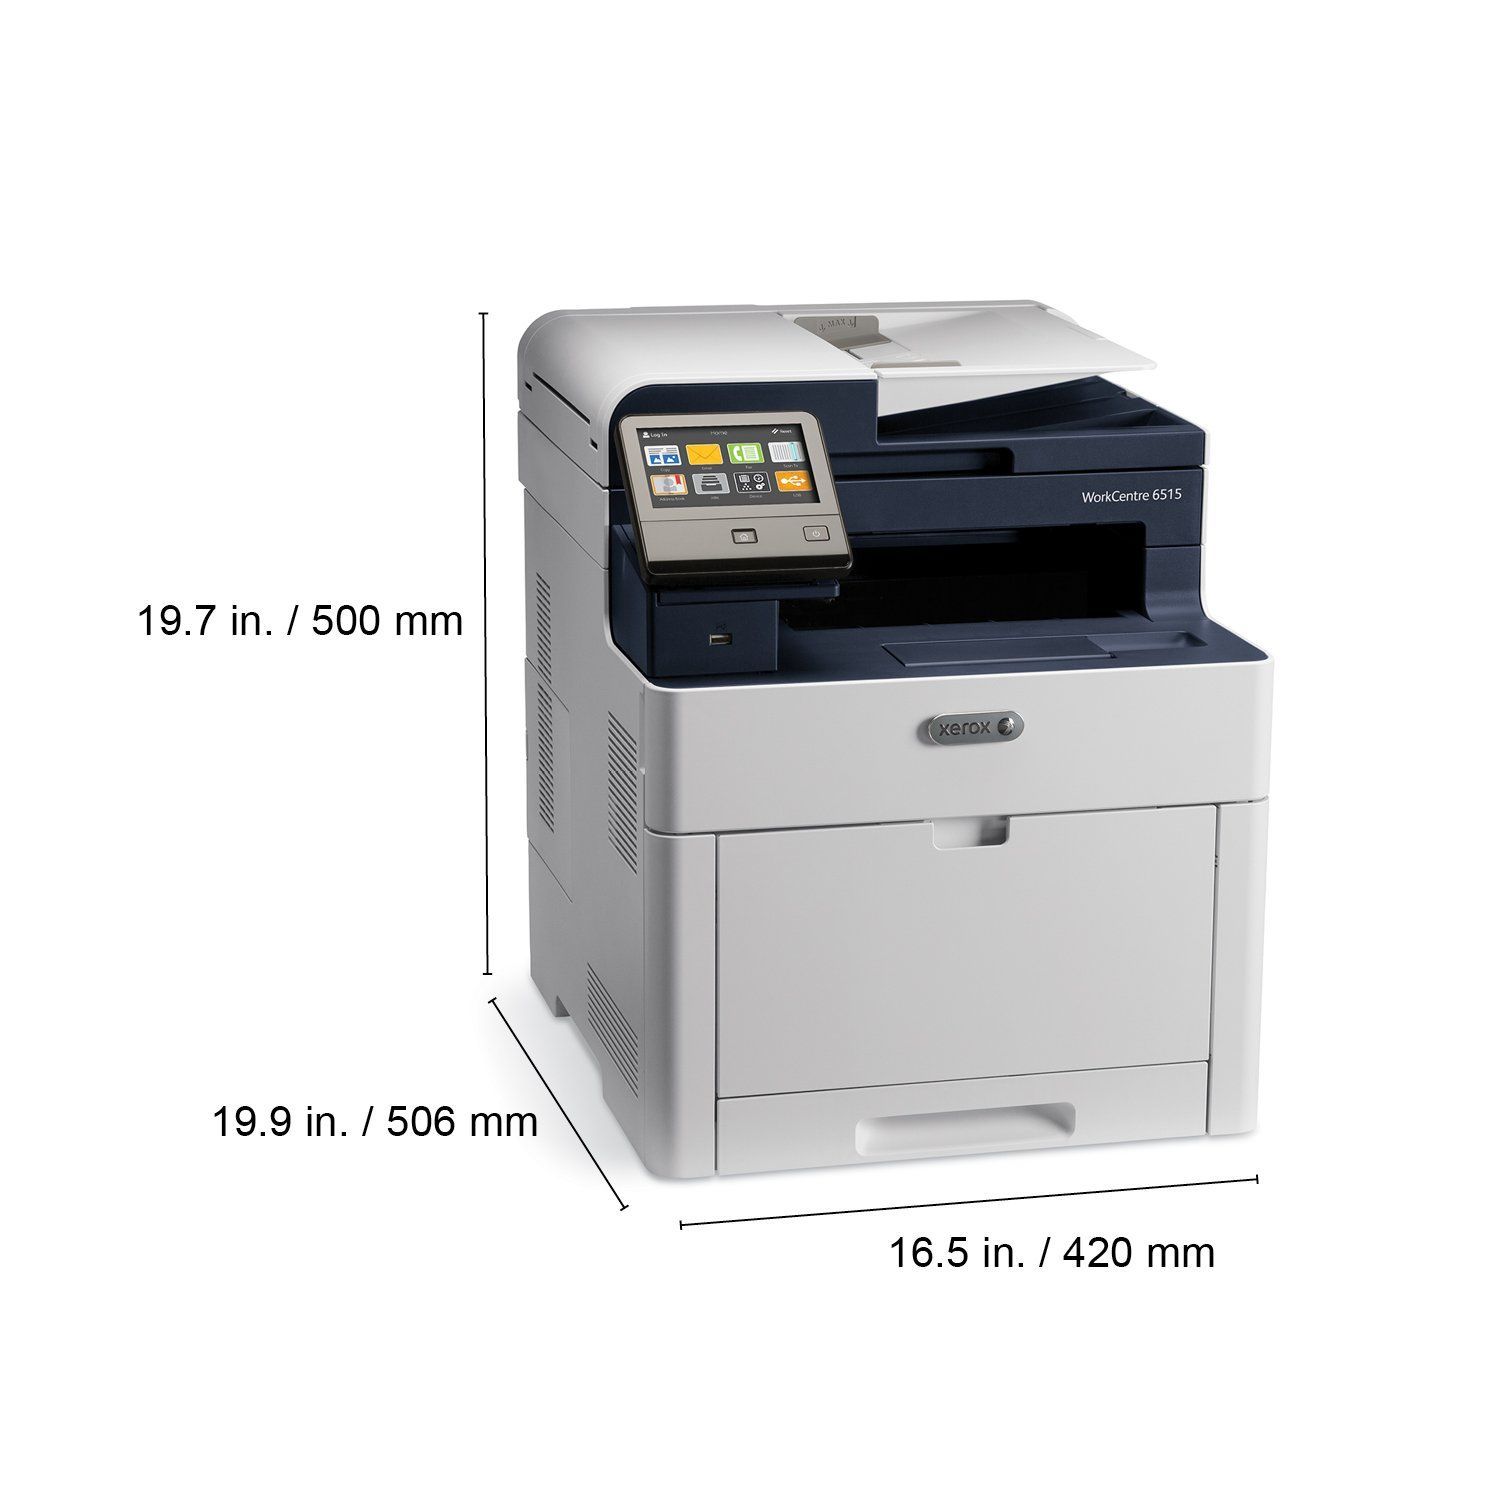 Xerox Workcentre 6515 N Details Can Be Found By Clicking On The